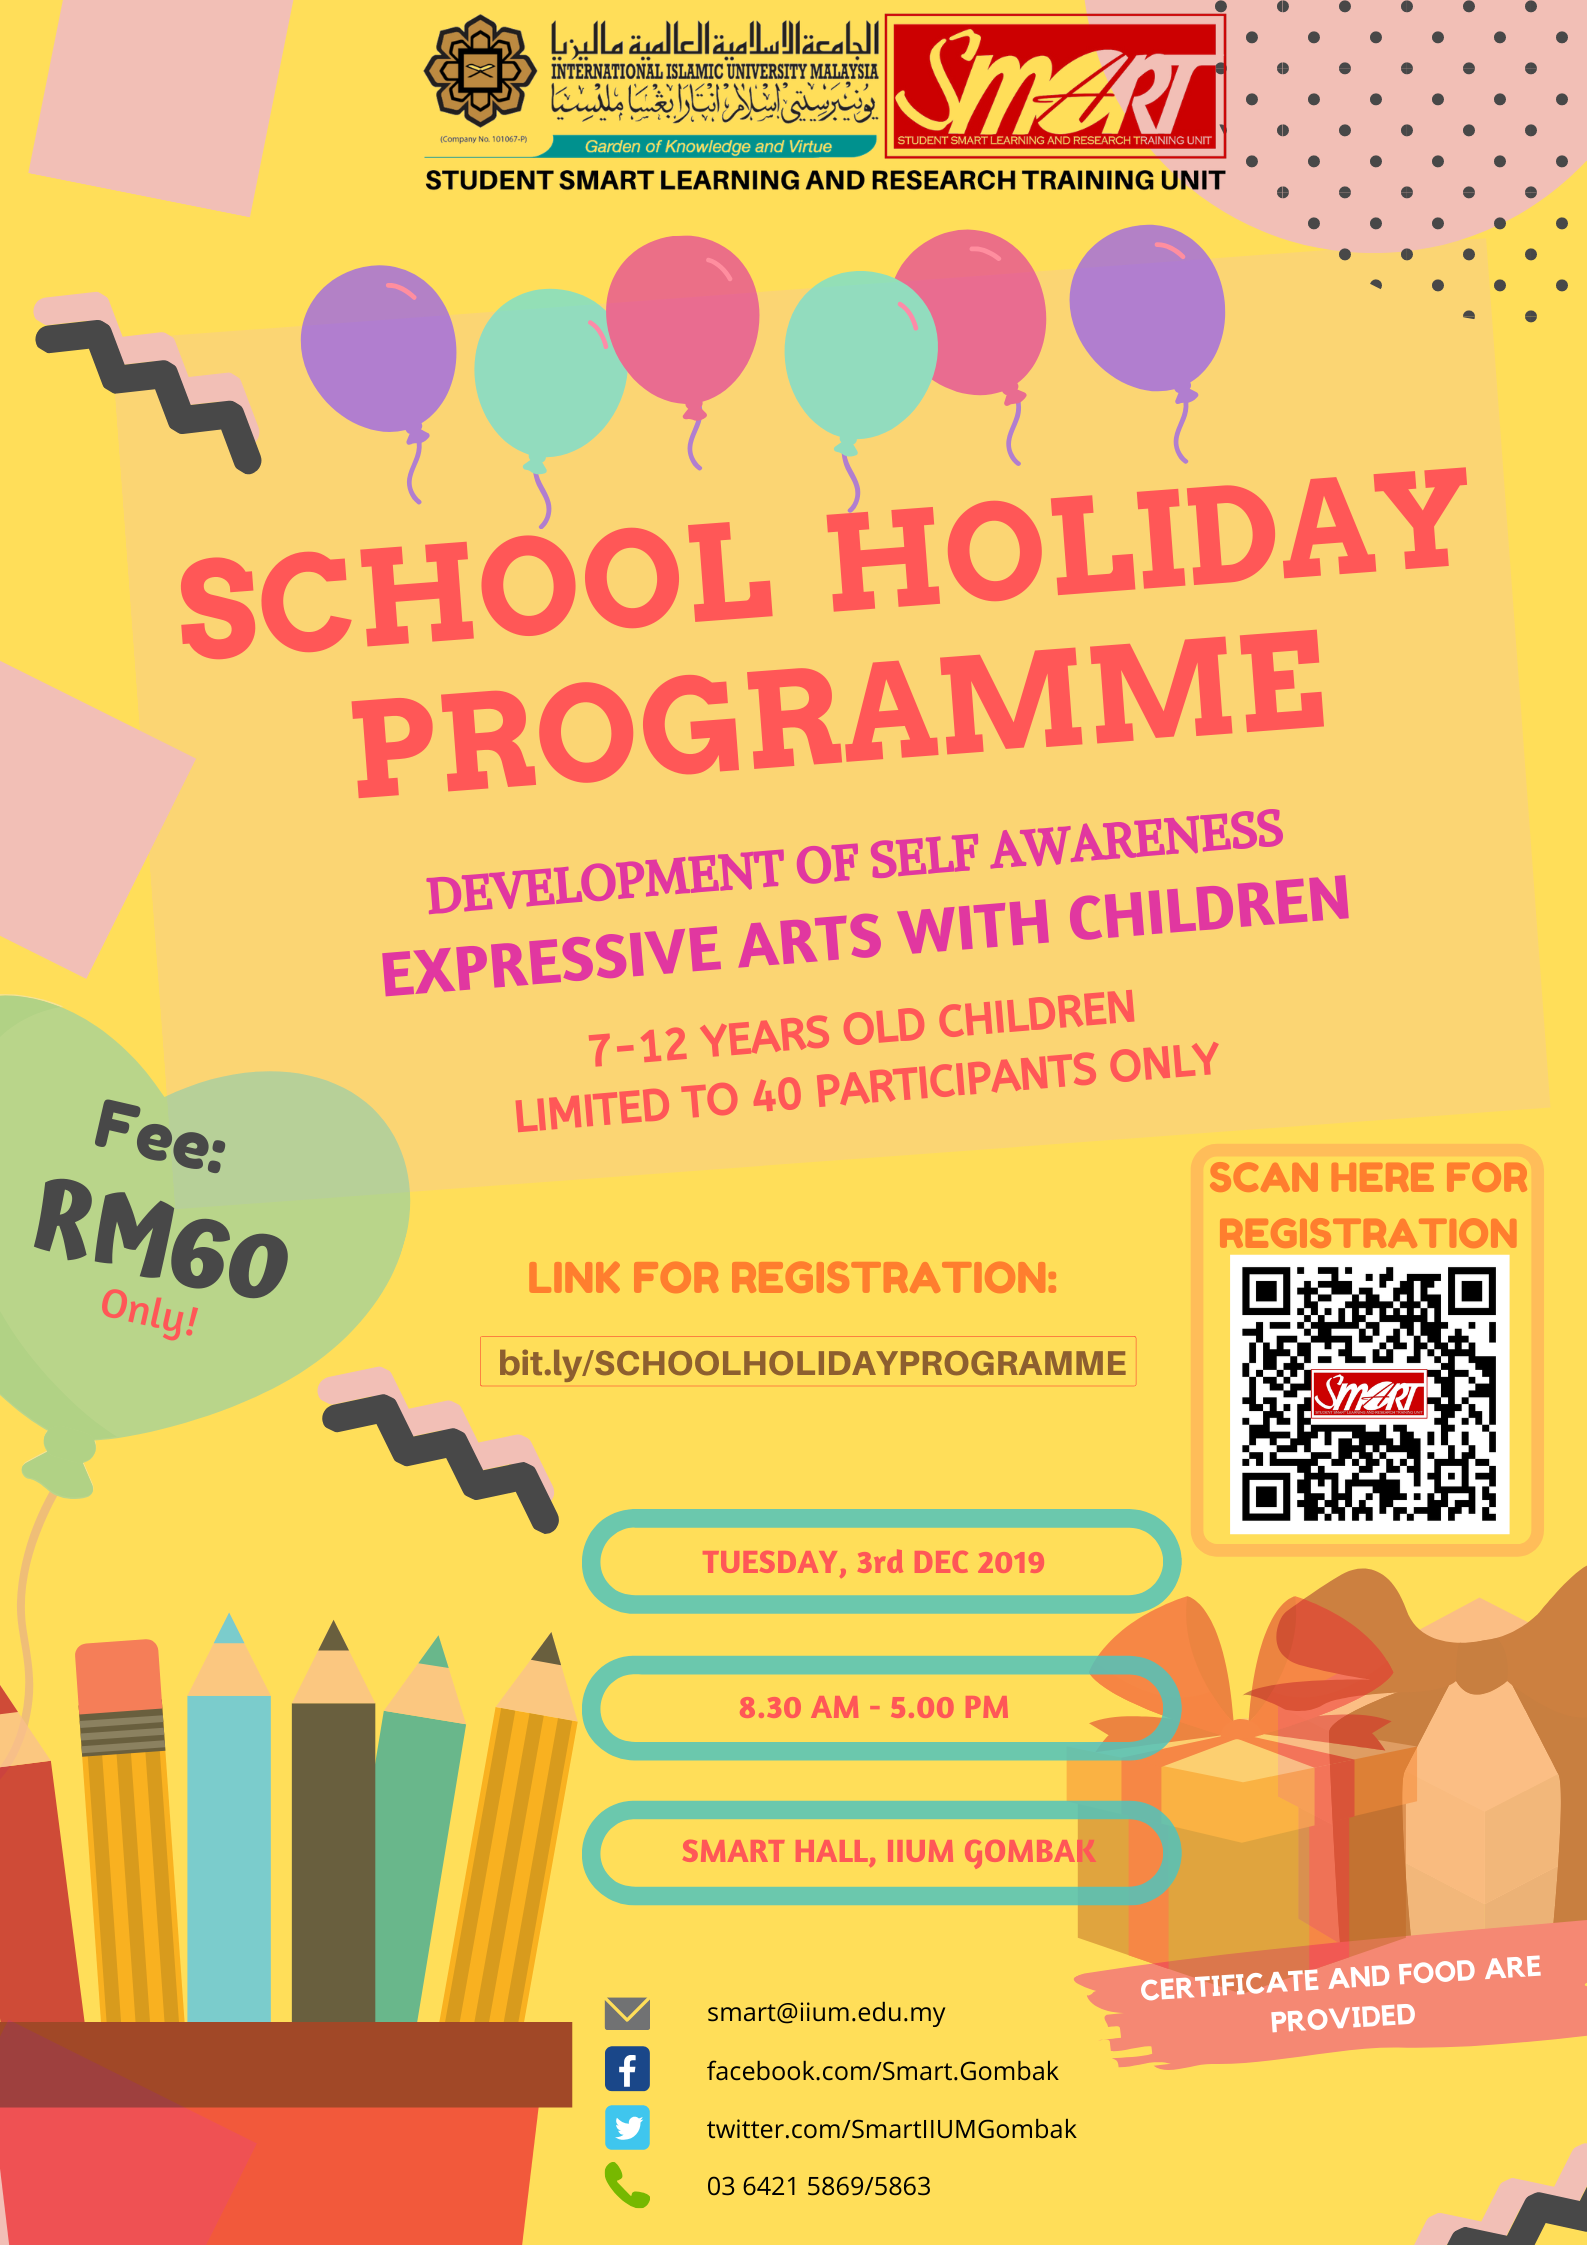 SCHOOL HOLIDAY PROGRAMME 2019